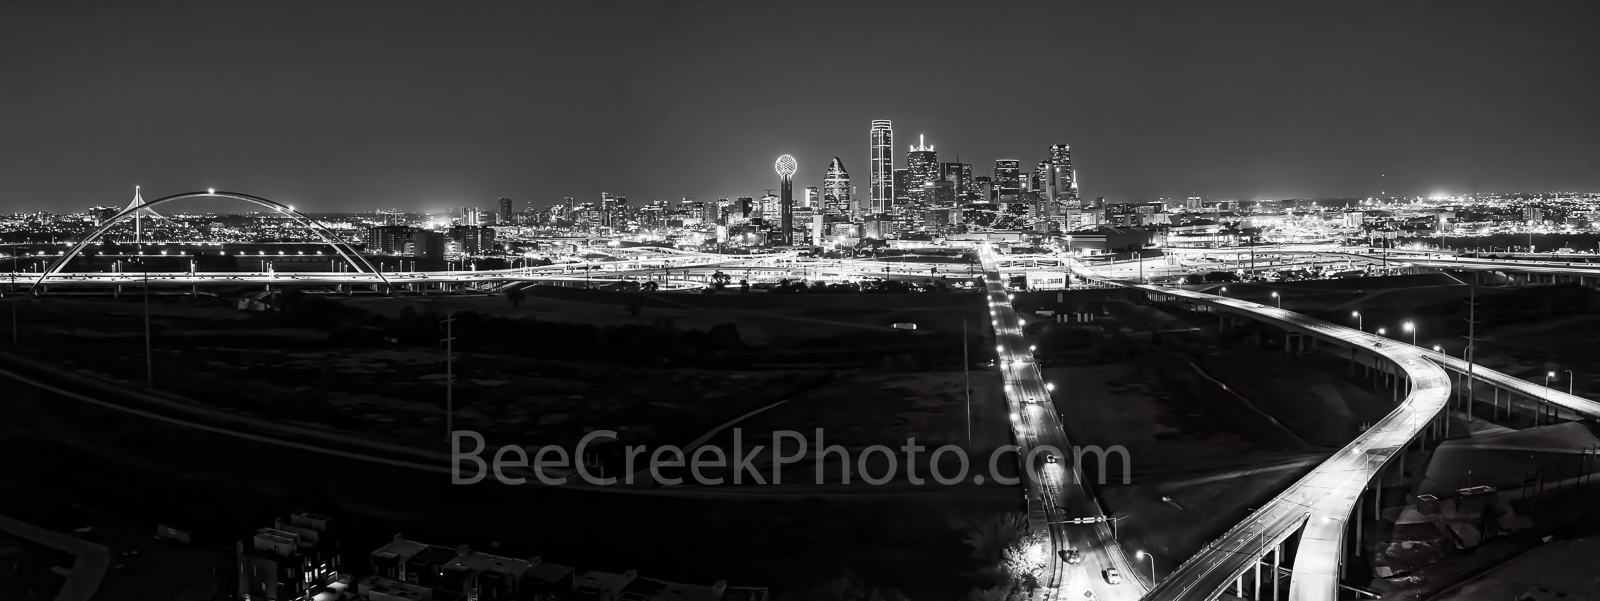 Dallas skyline pano, panorama, black and white, bw, BW,  dark, aerial, city, roads, downtown, Trinity river, Margaret Hunt Hill Bridge, Margaret McDermott bridge, skyscrapers, Bank of America, landmar, photo